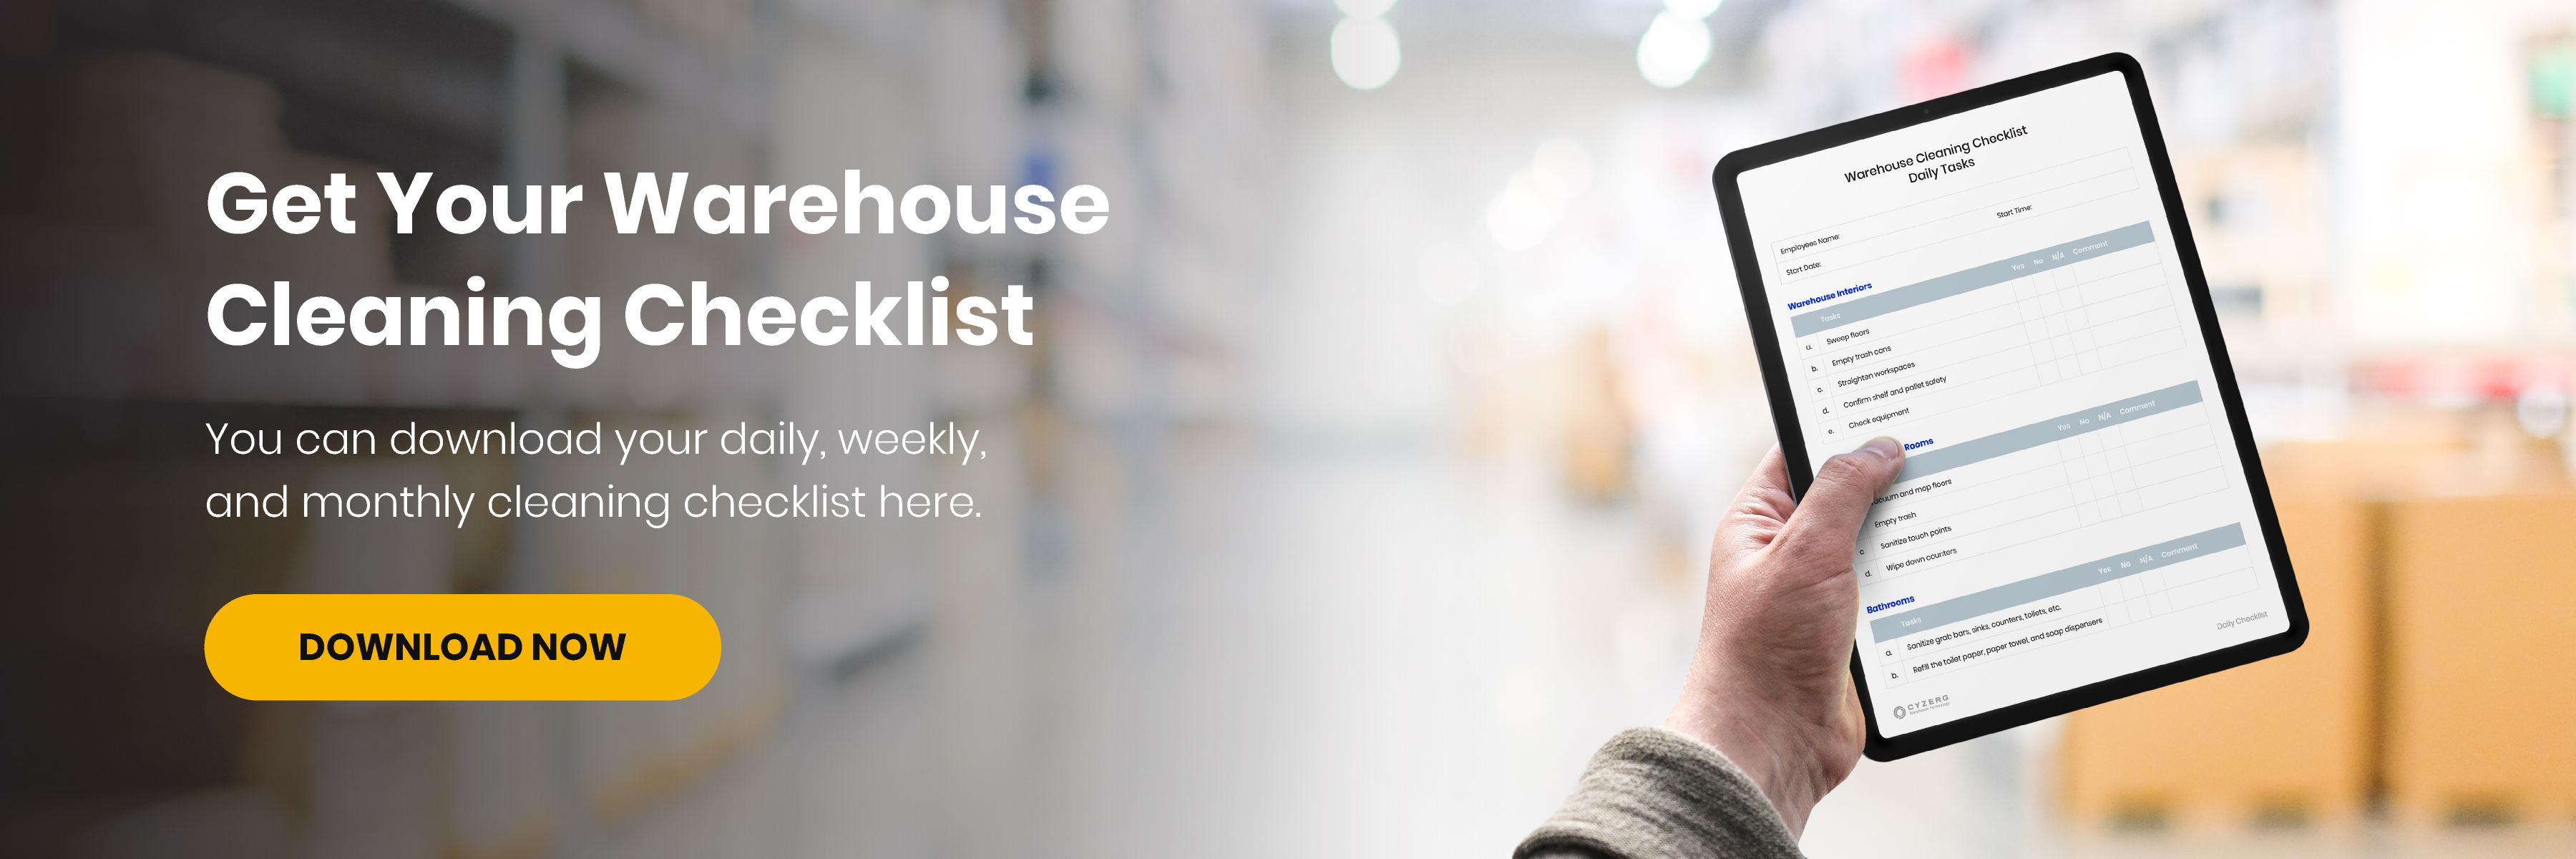 Warehouse Cleaning Checklist | Warehouse Organization